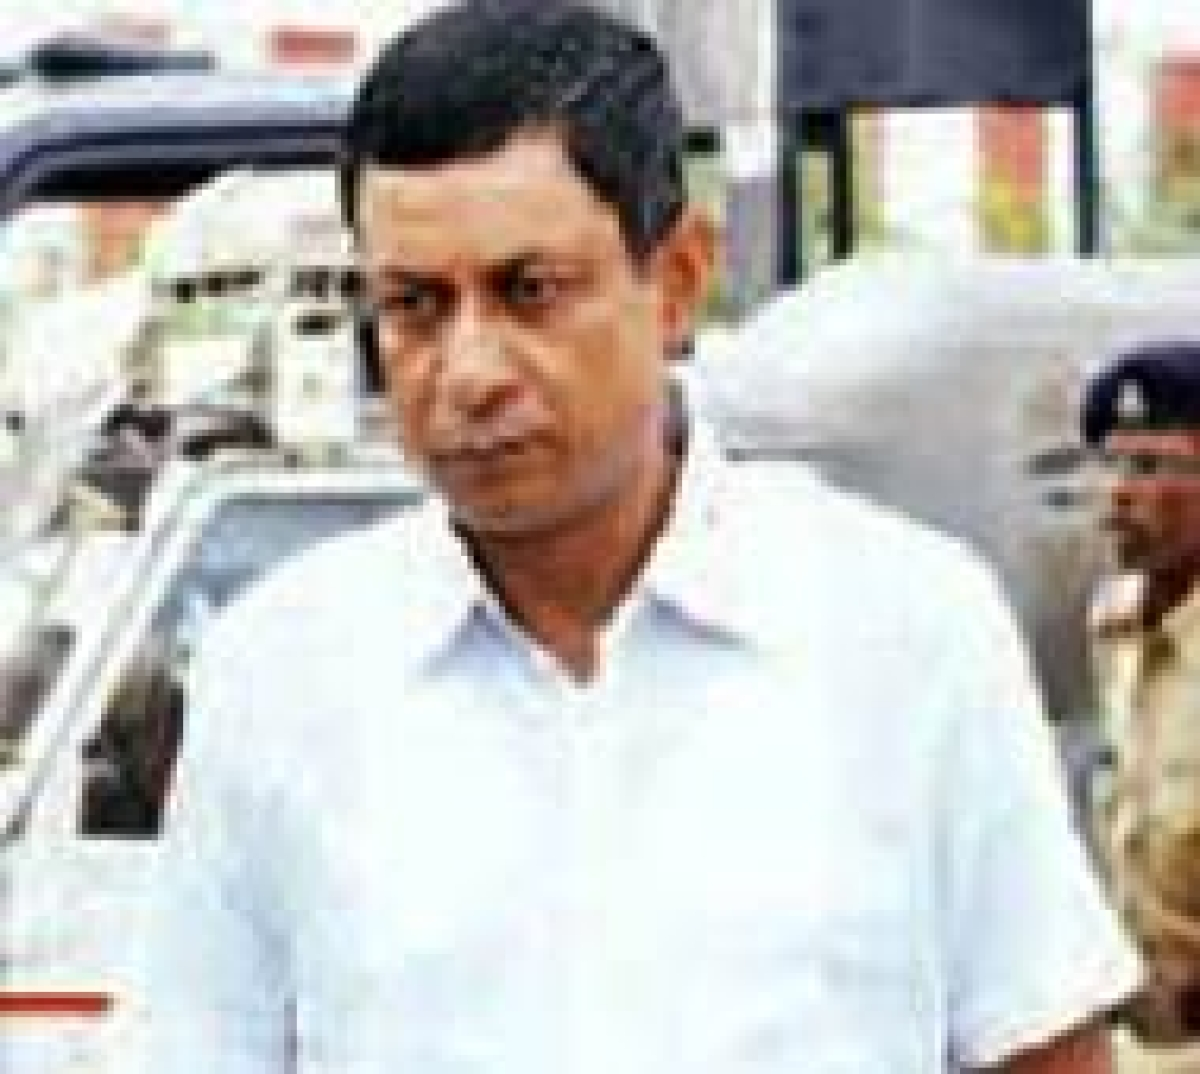 First affidavit based on facts, don't know about second one: RVS Mani